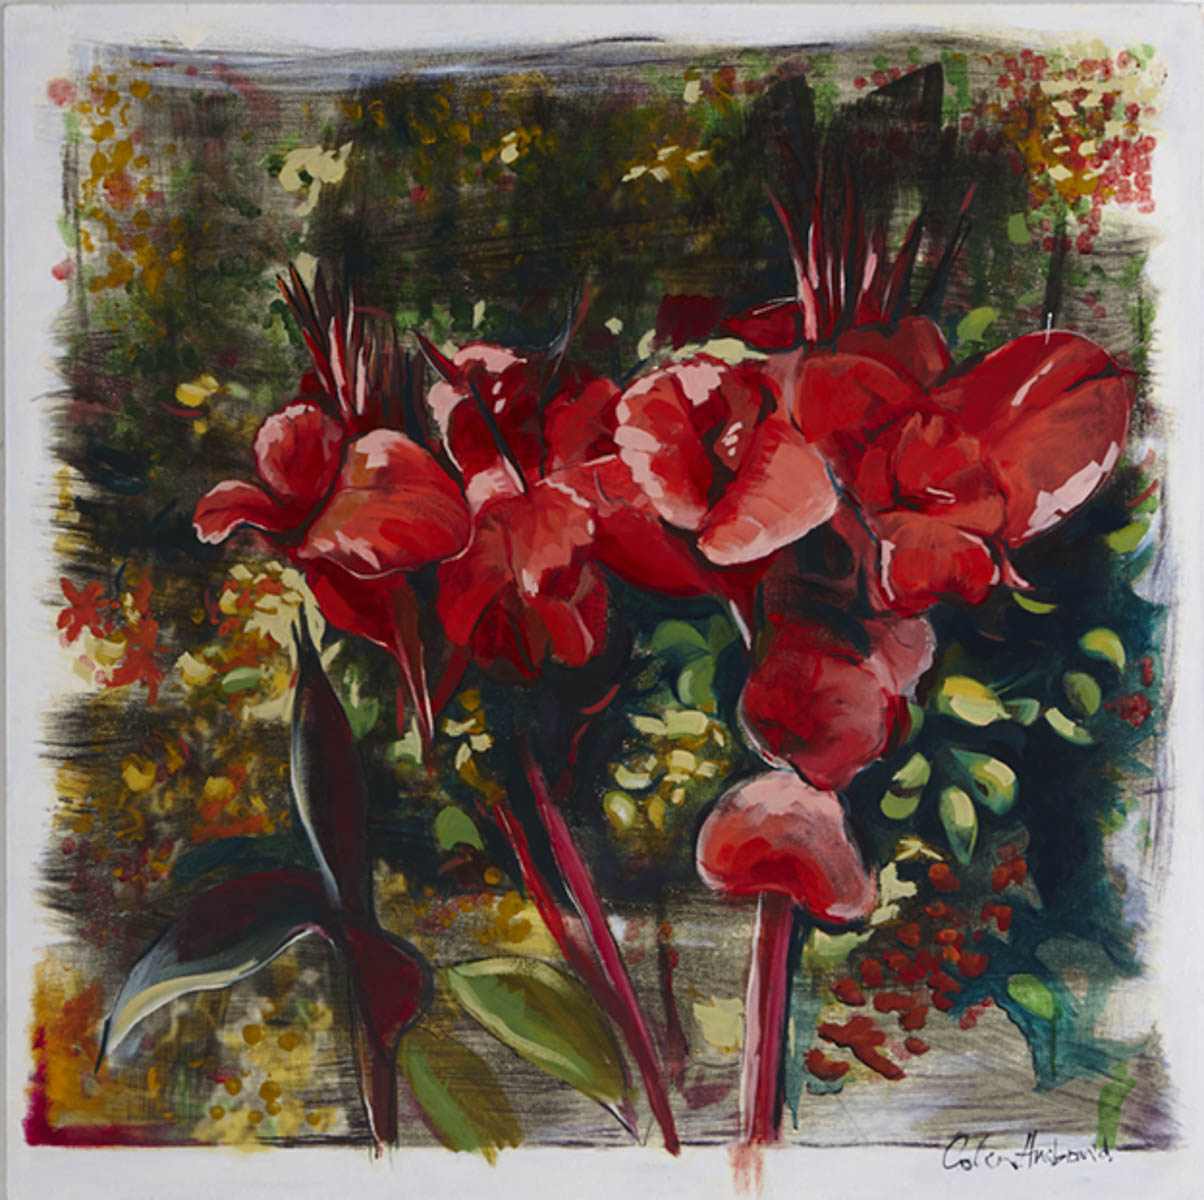 red canna lillies 2